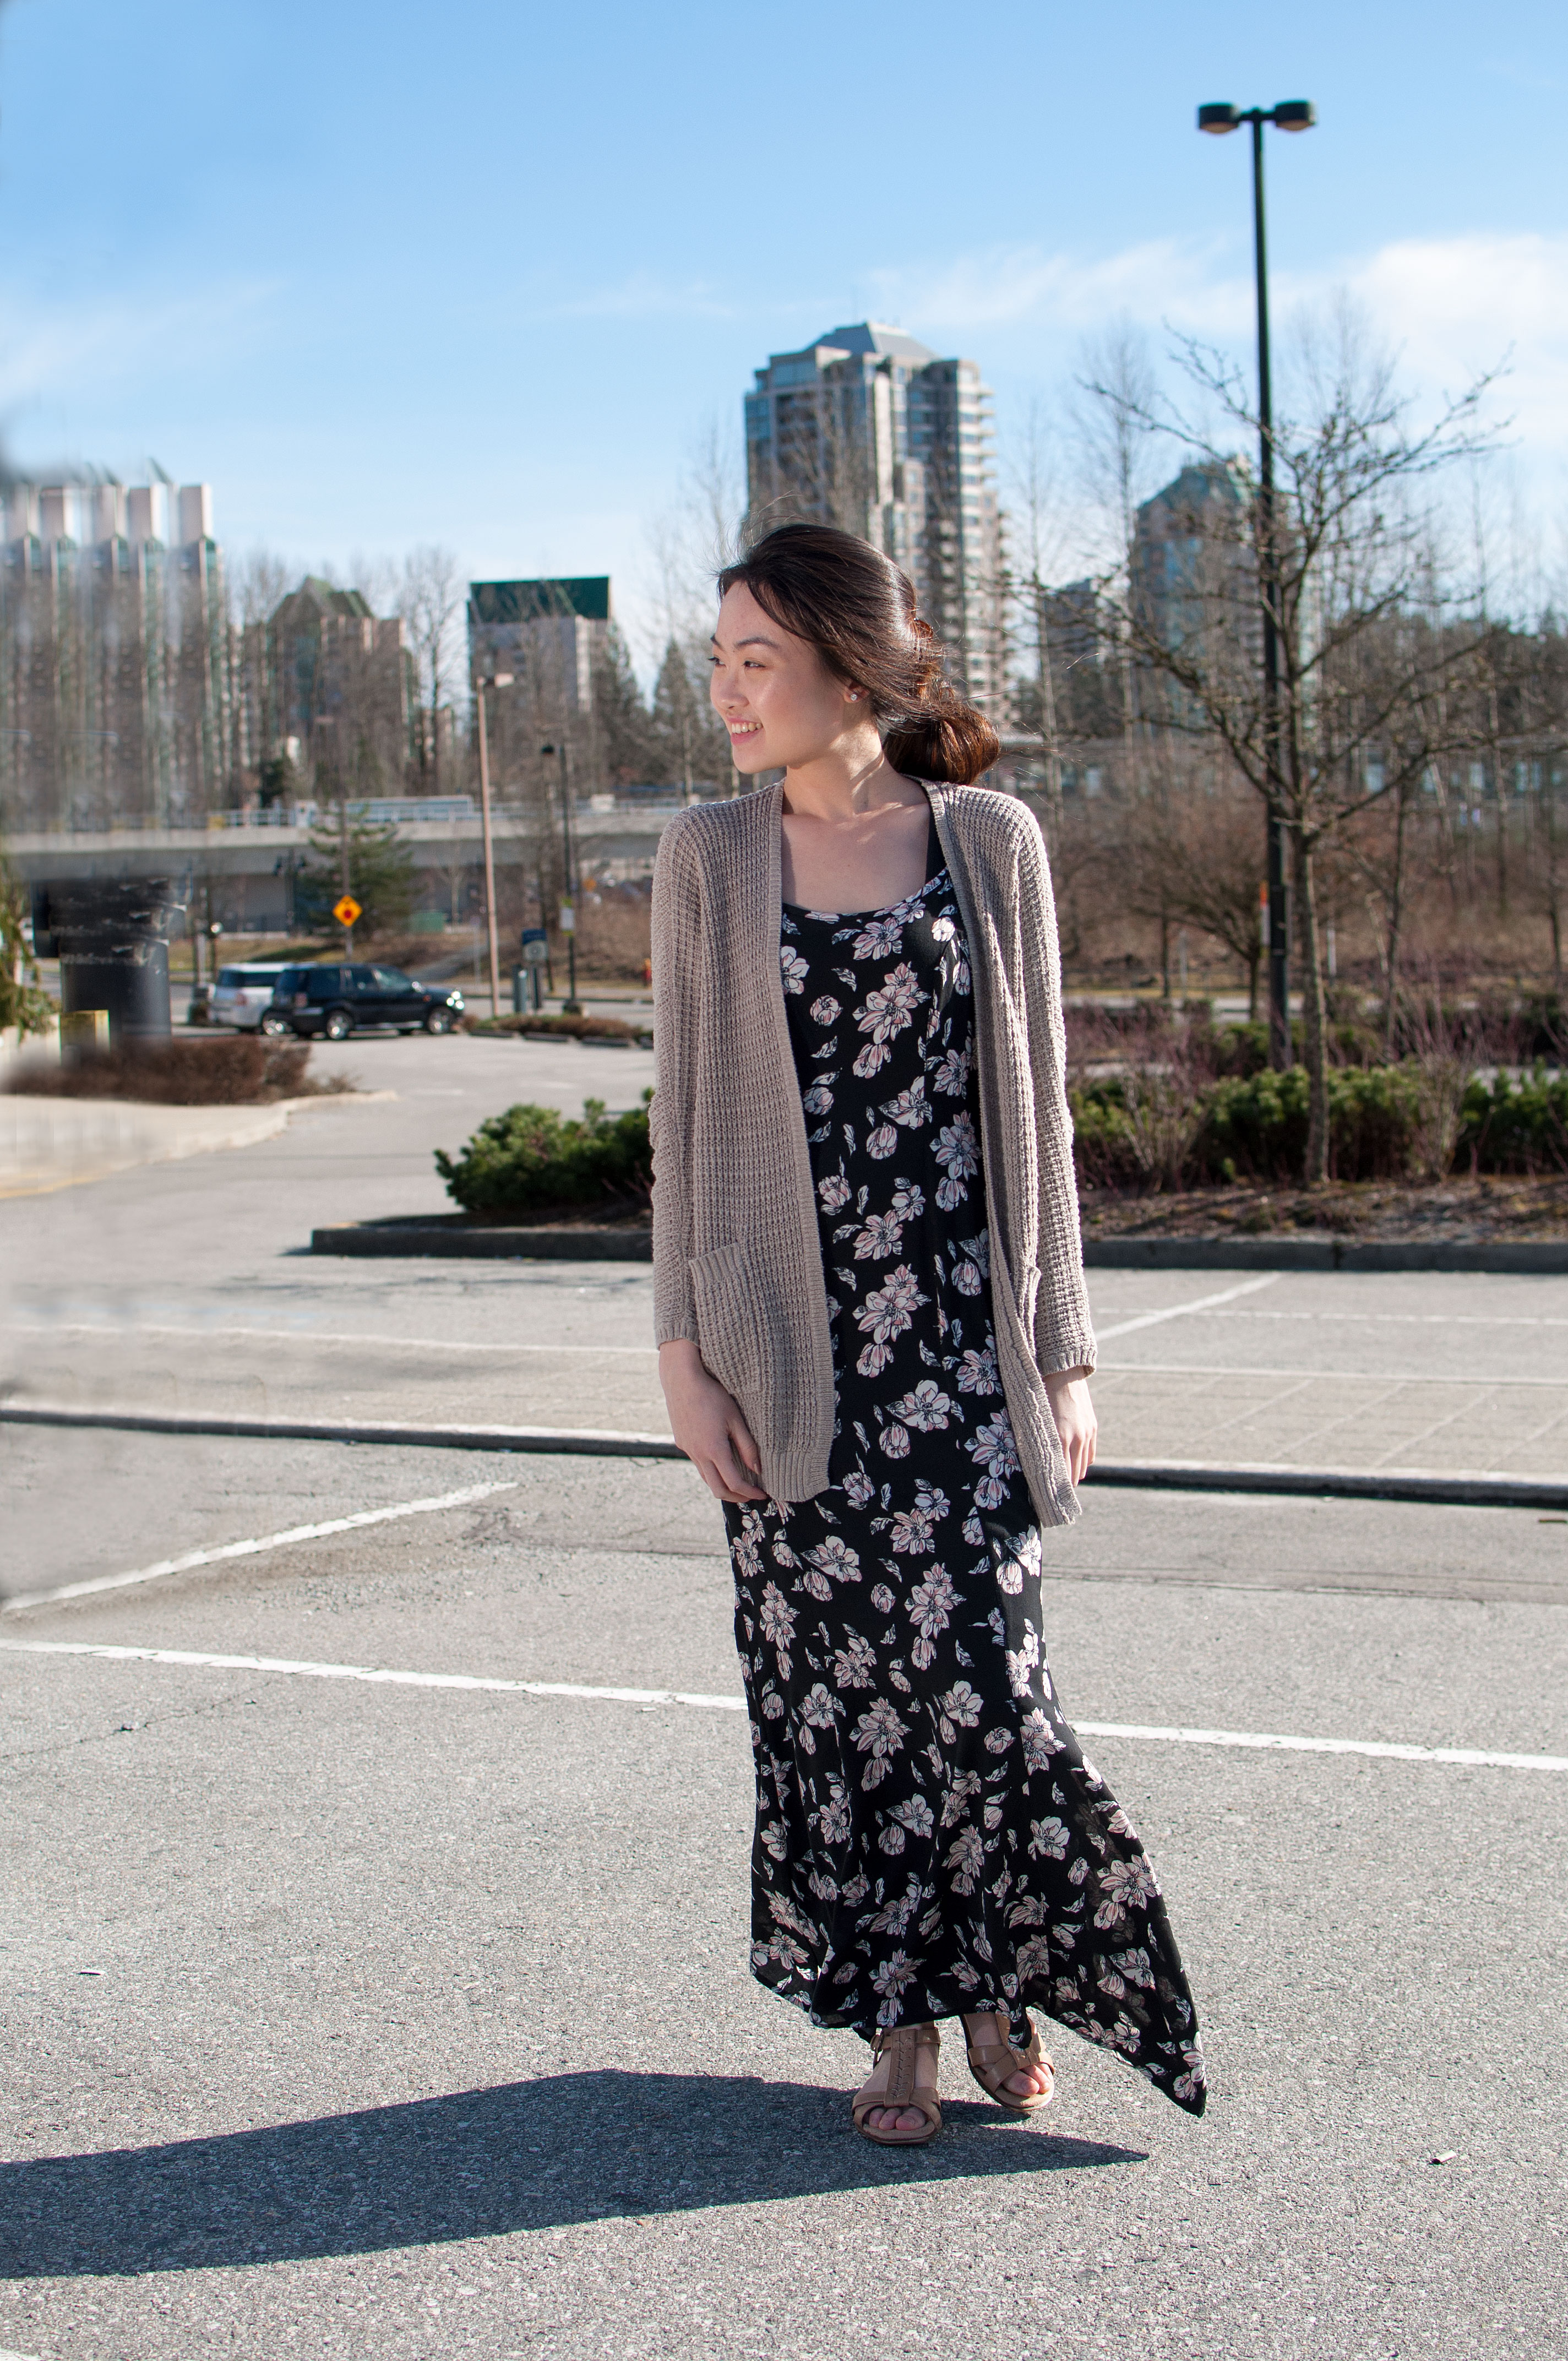 Aislante persona que practica jogging editorial  Floral Maxi to Welcome Spring! – Little Limelight